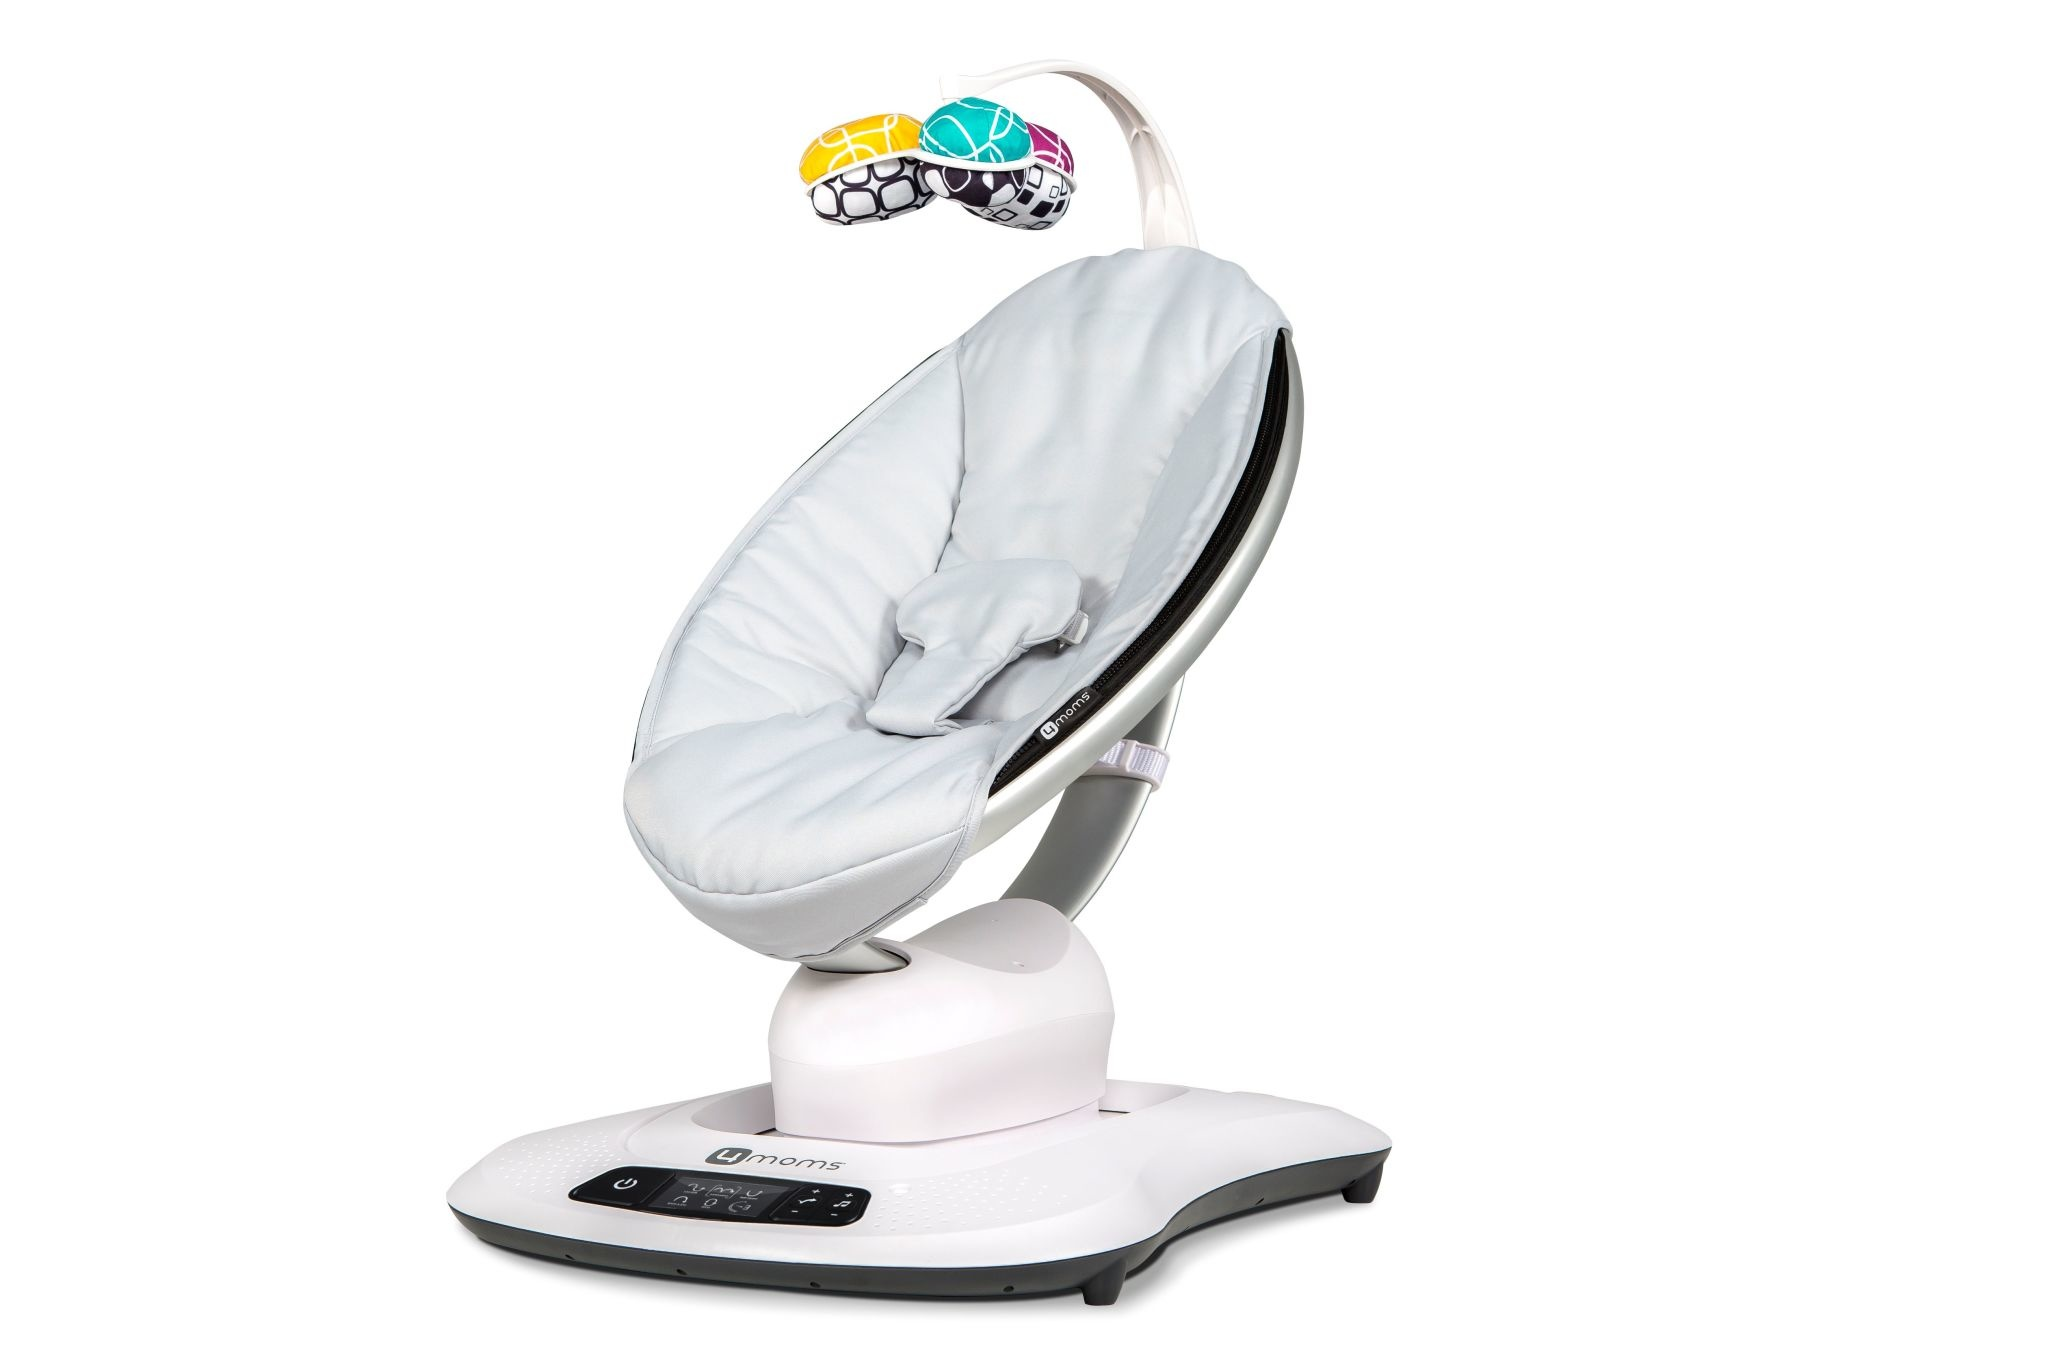 4Moms 4Moms MamaRoo Grey 4.0